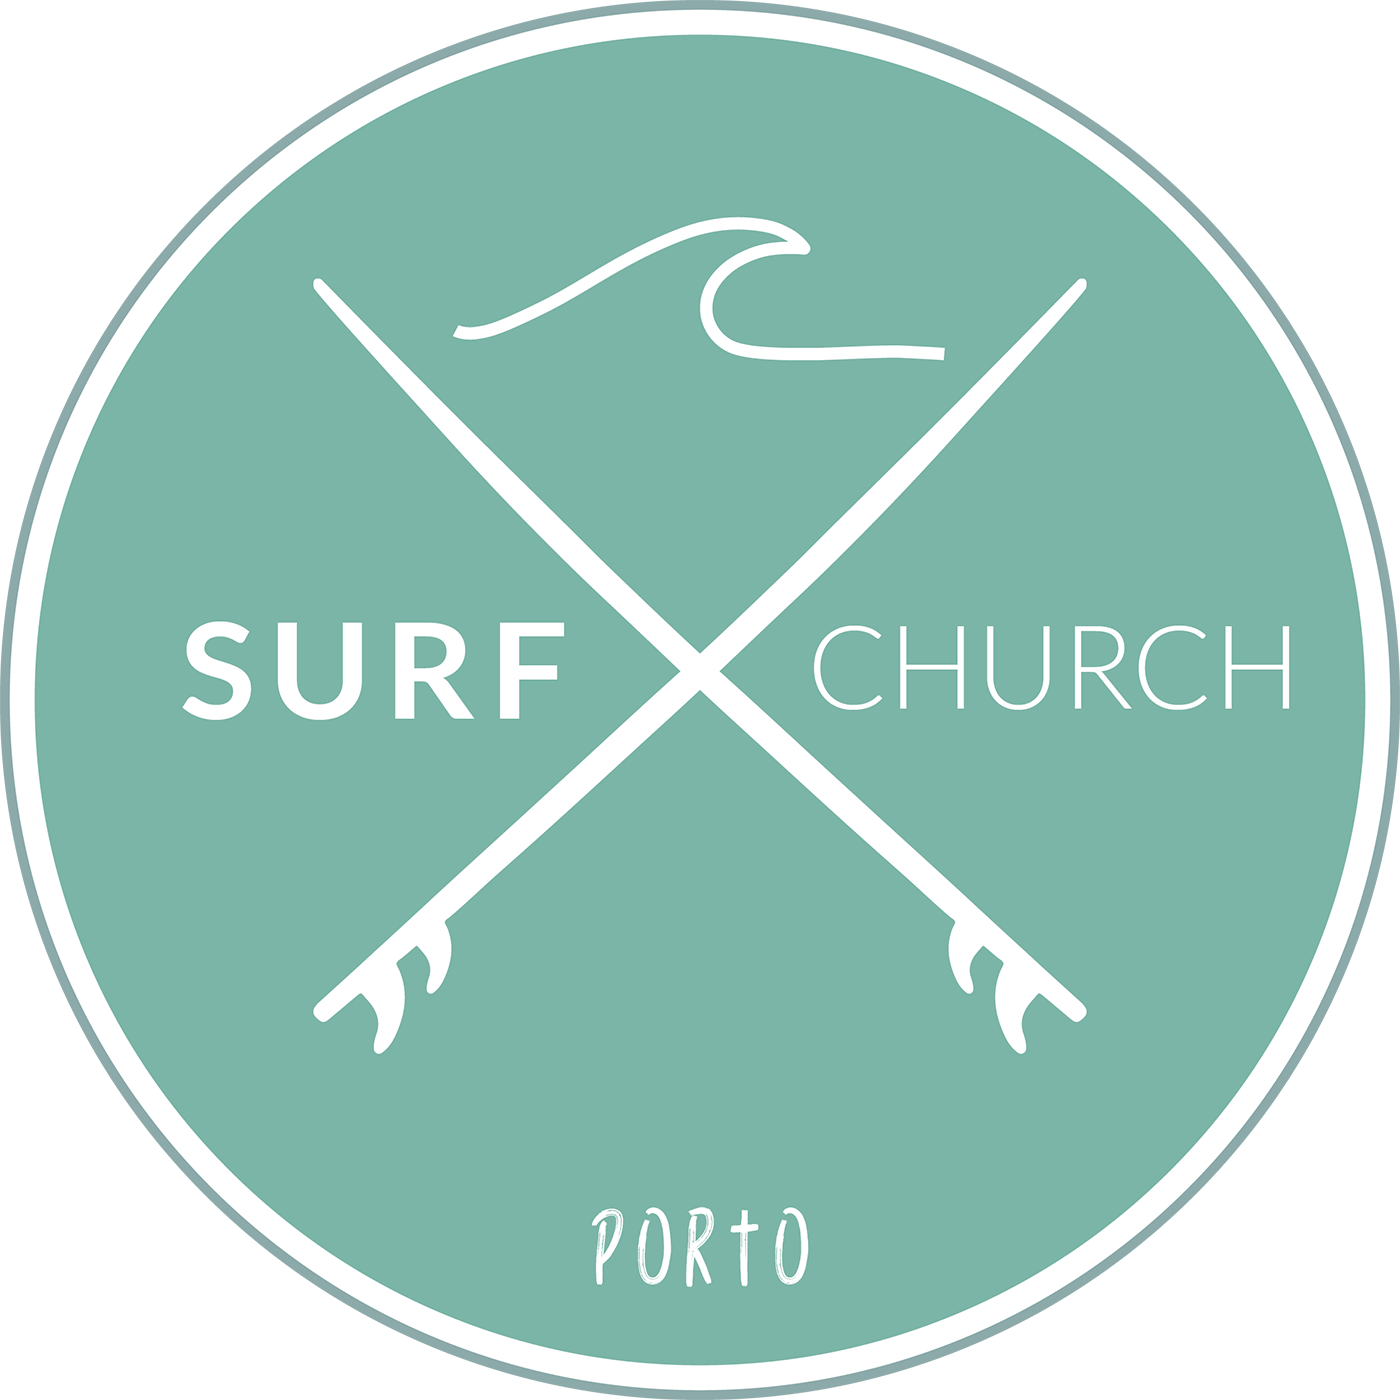 Surf Church Porto